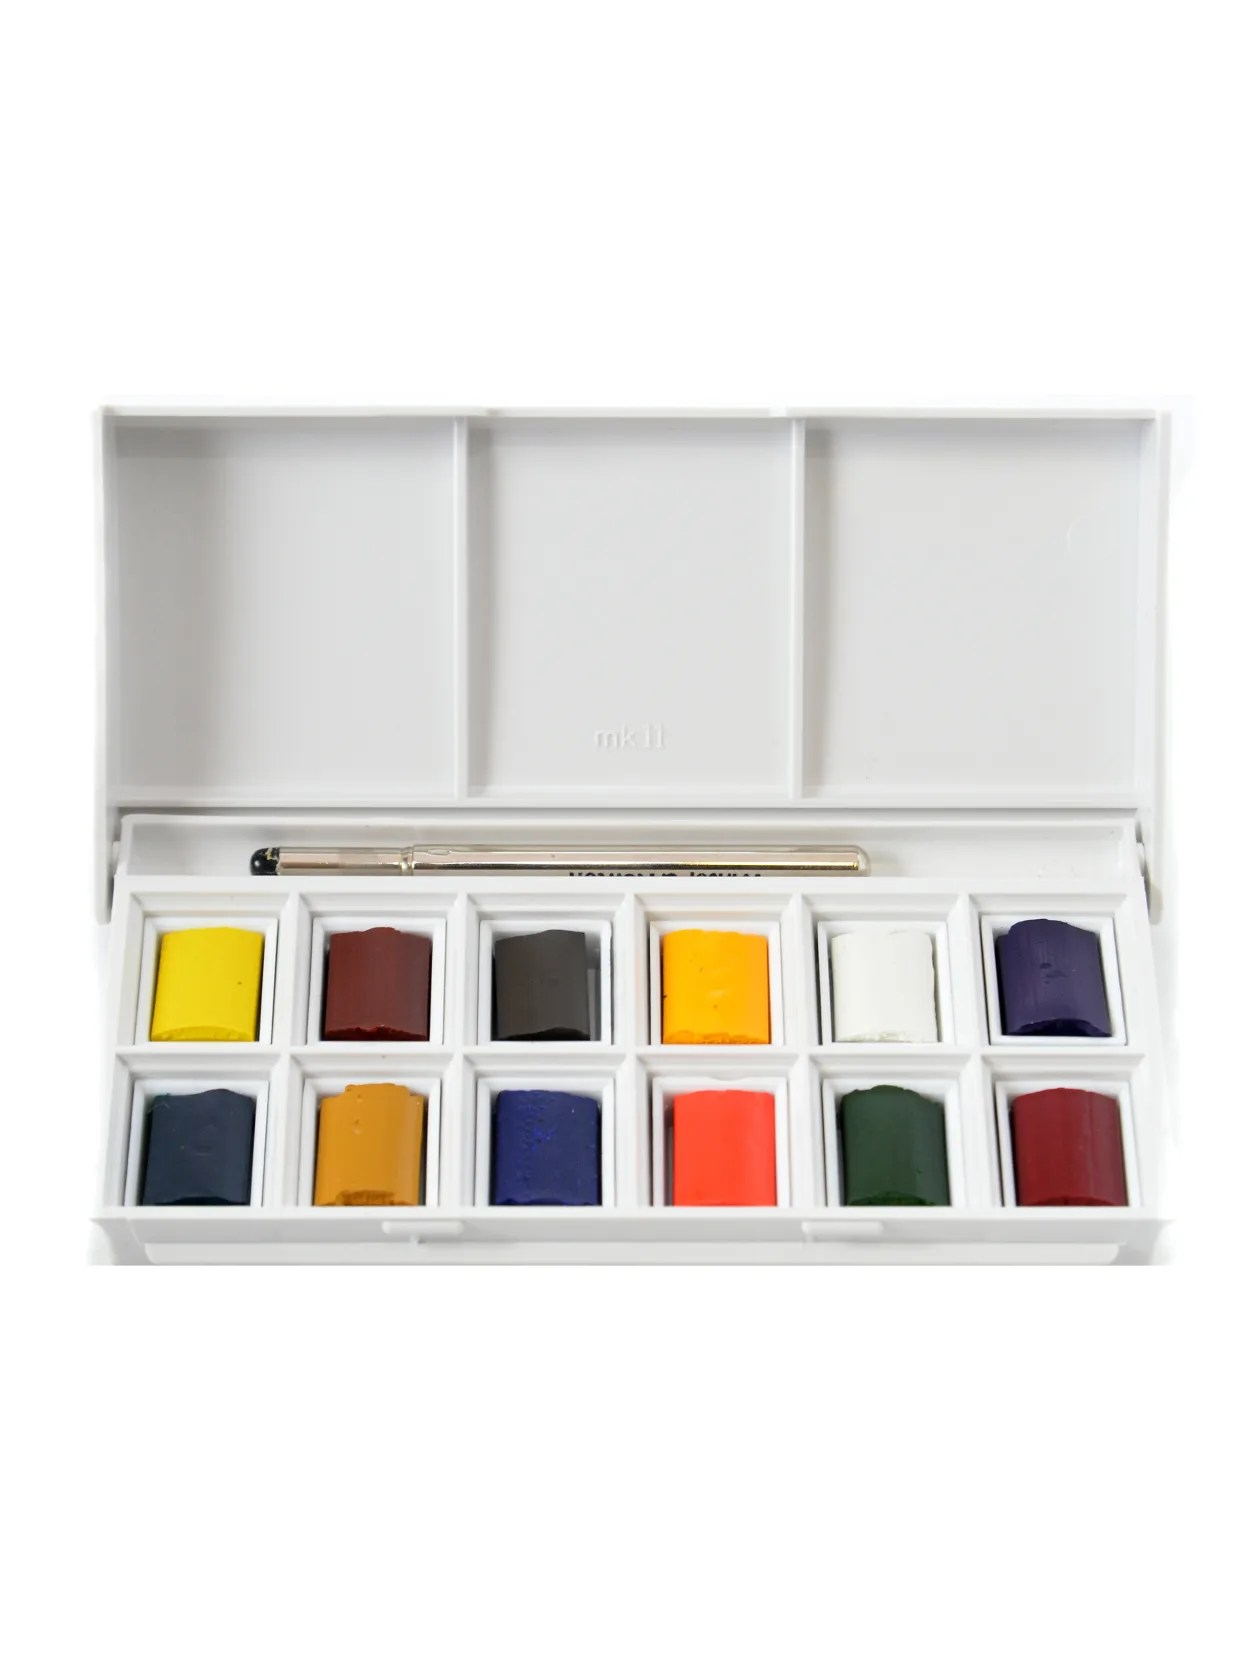 Winsor & Newton Water Colours Review: A Great Set for